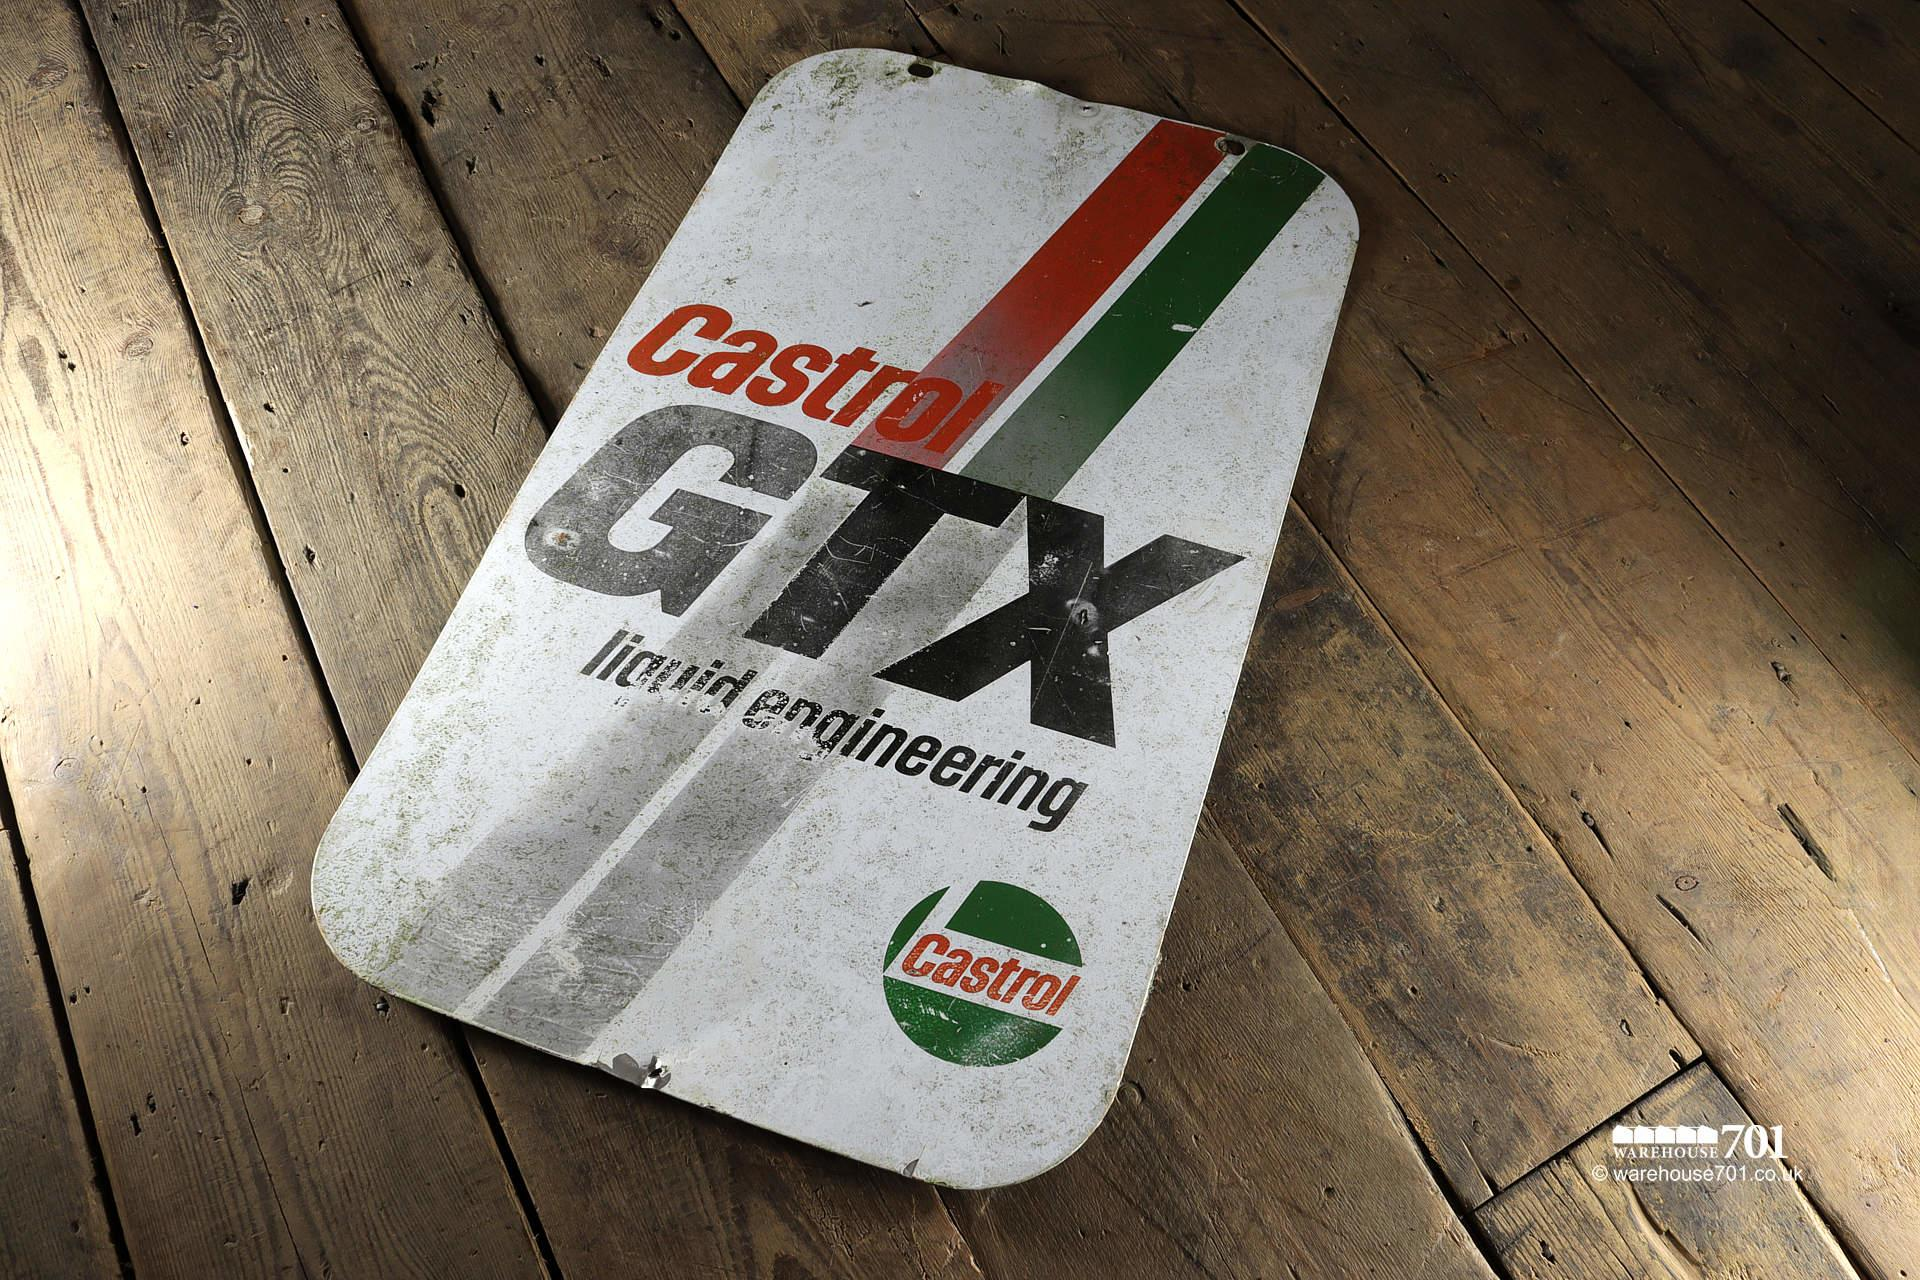 Salvaged Castrol GTX Double-Sided Swing Sign Panel #2